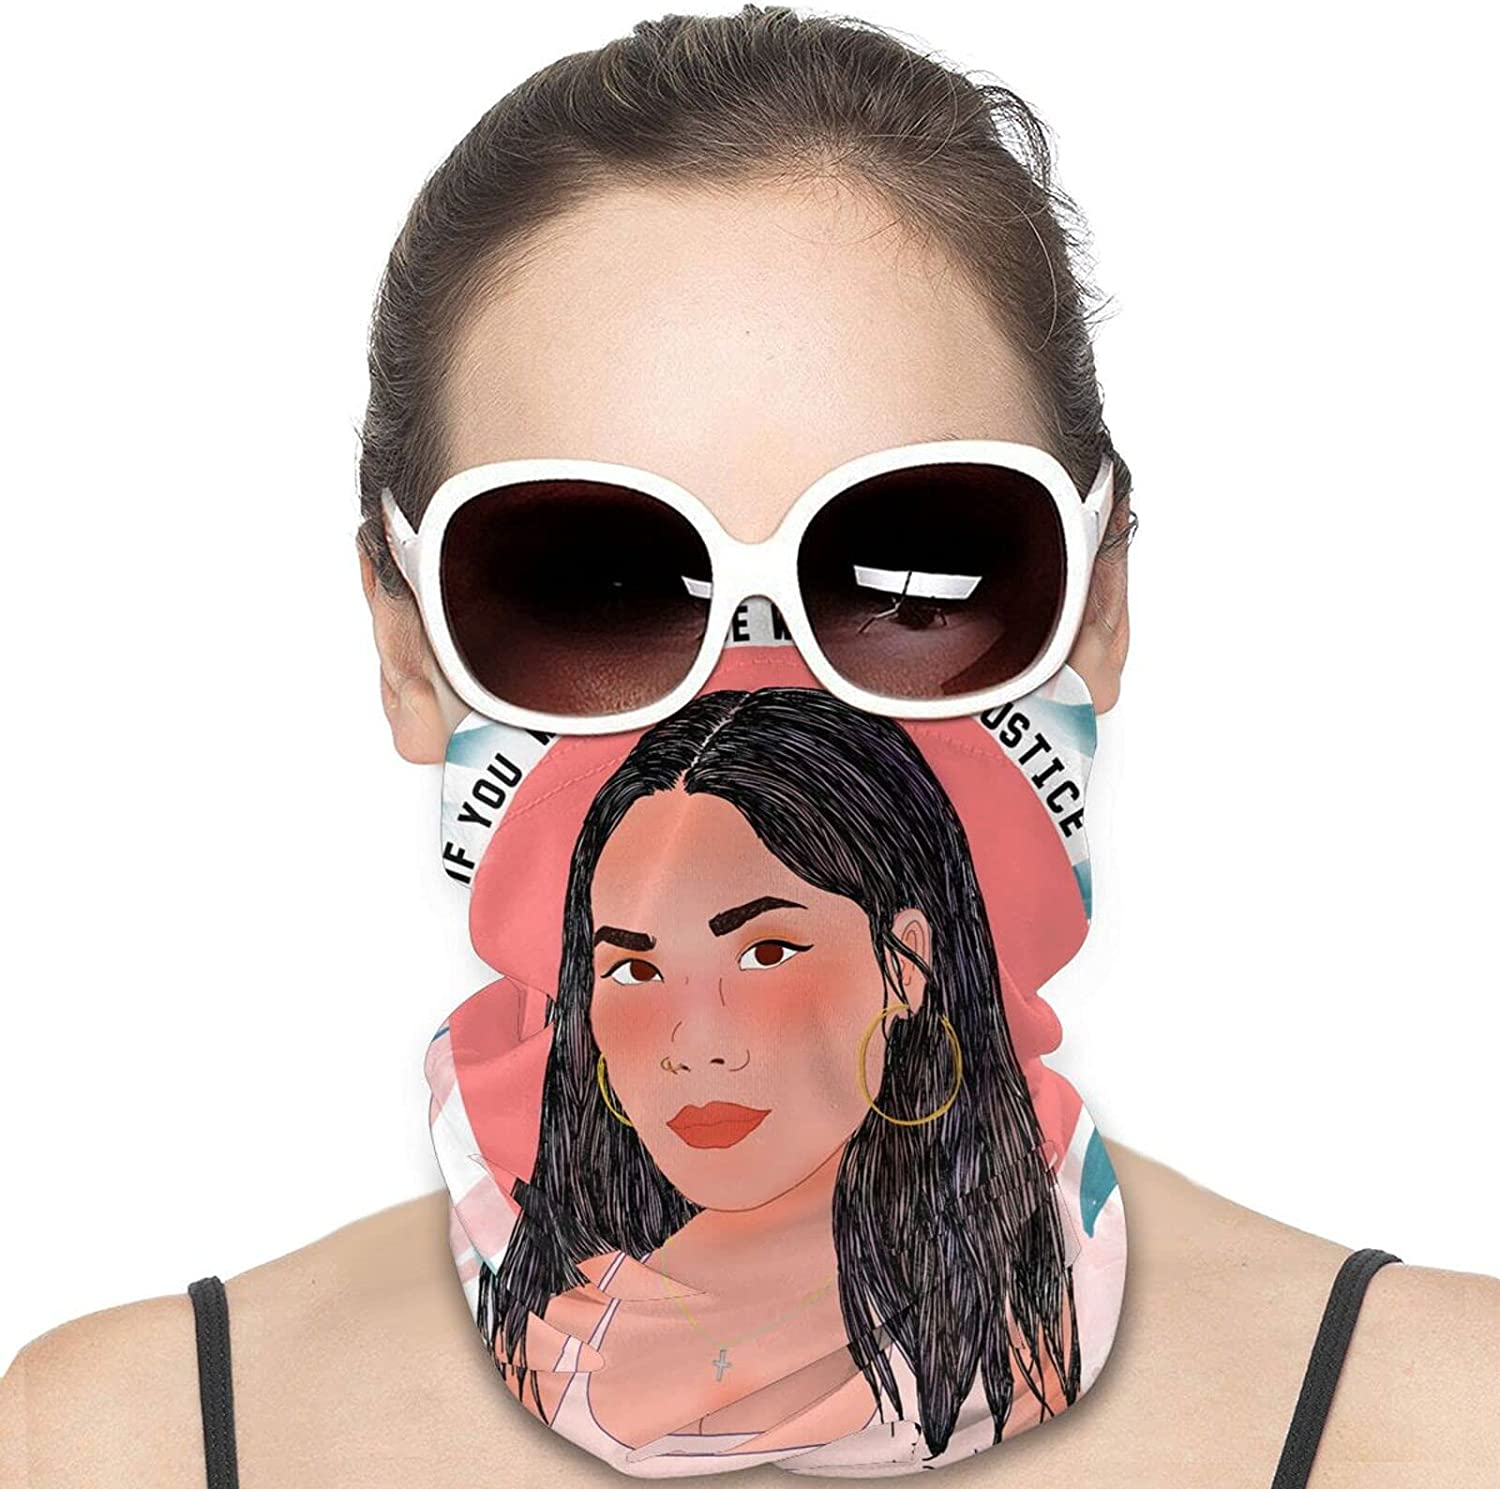 If You Want Peace Work Justice Round Neck Gaiter Bandnas Face Cover Uv Protection Prevent bask in Ice Scarf Headbands Perfect for Motorcycle Cycling Running Festival Raves Outdoors